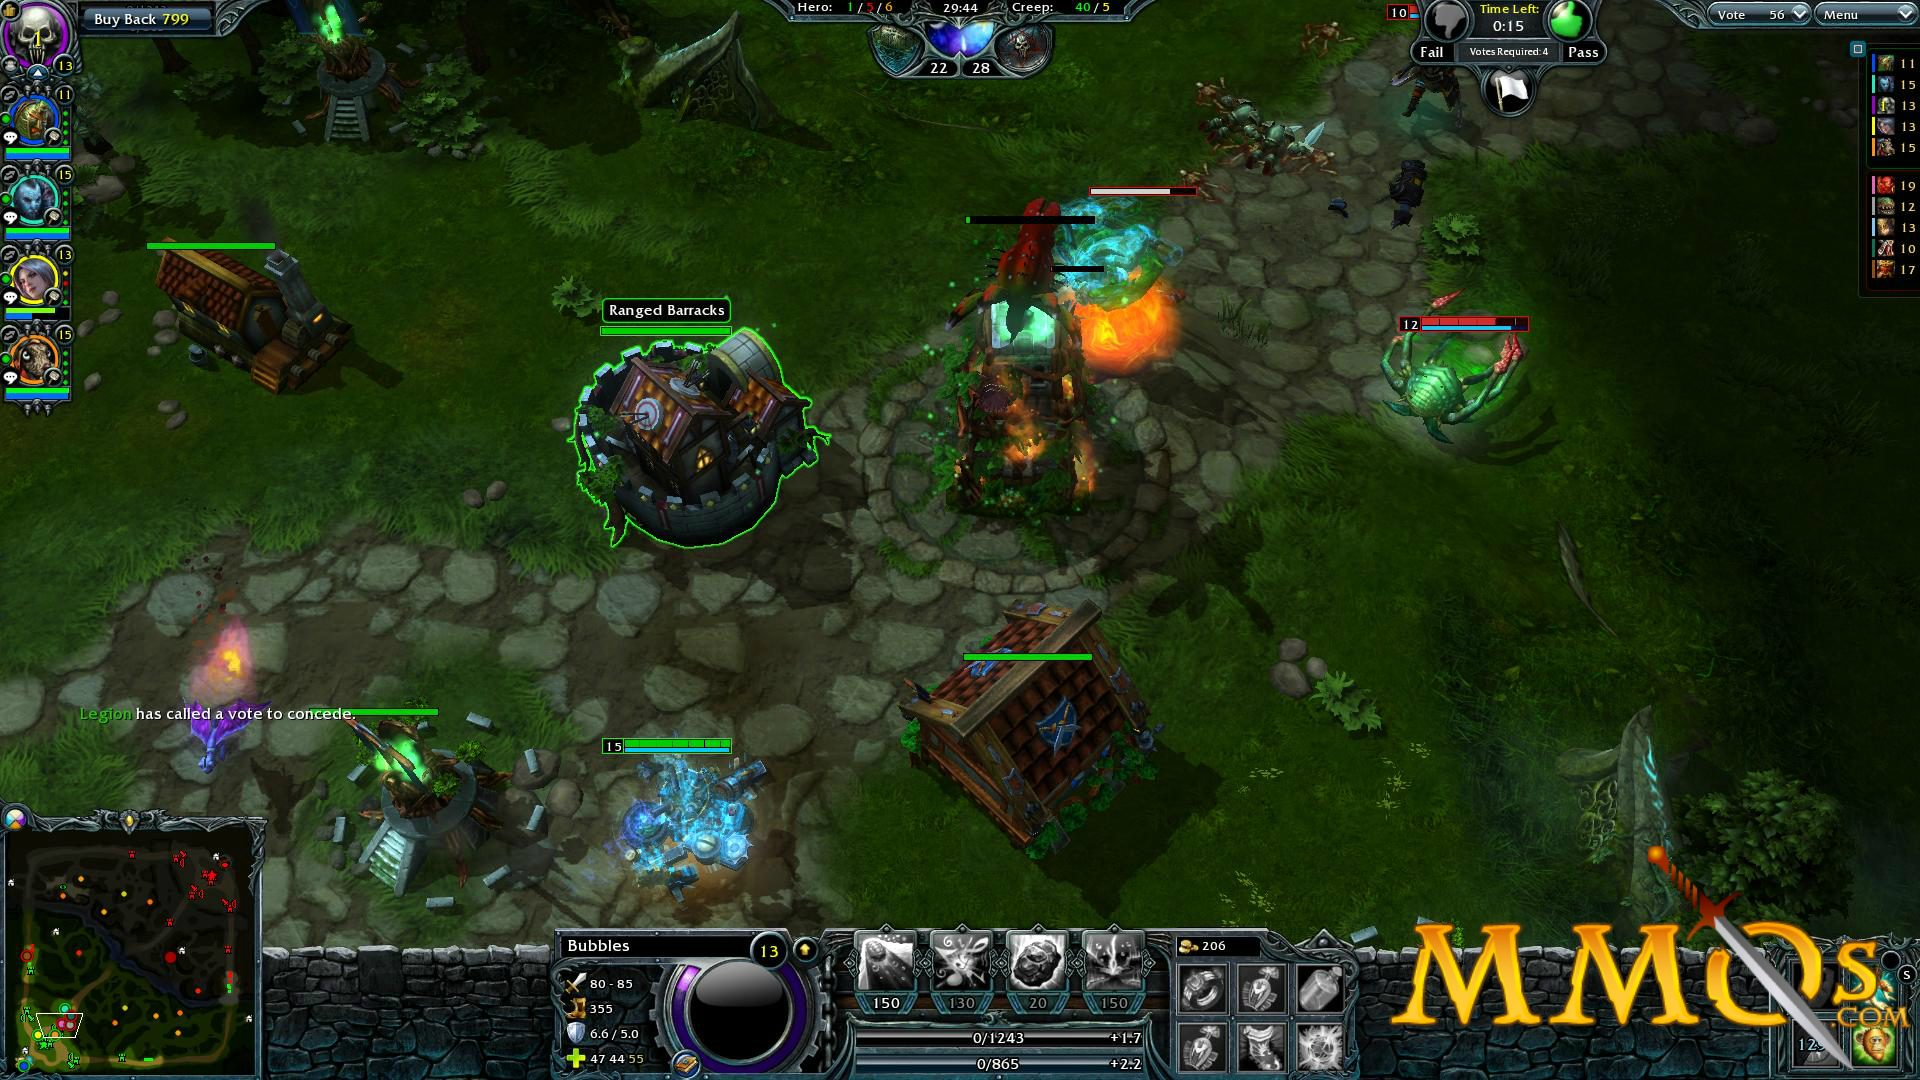 Heroes Of Newerth Pics, Video Game Collection